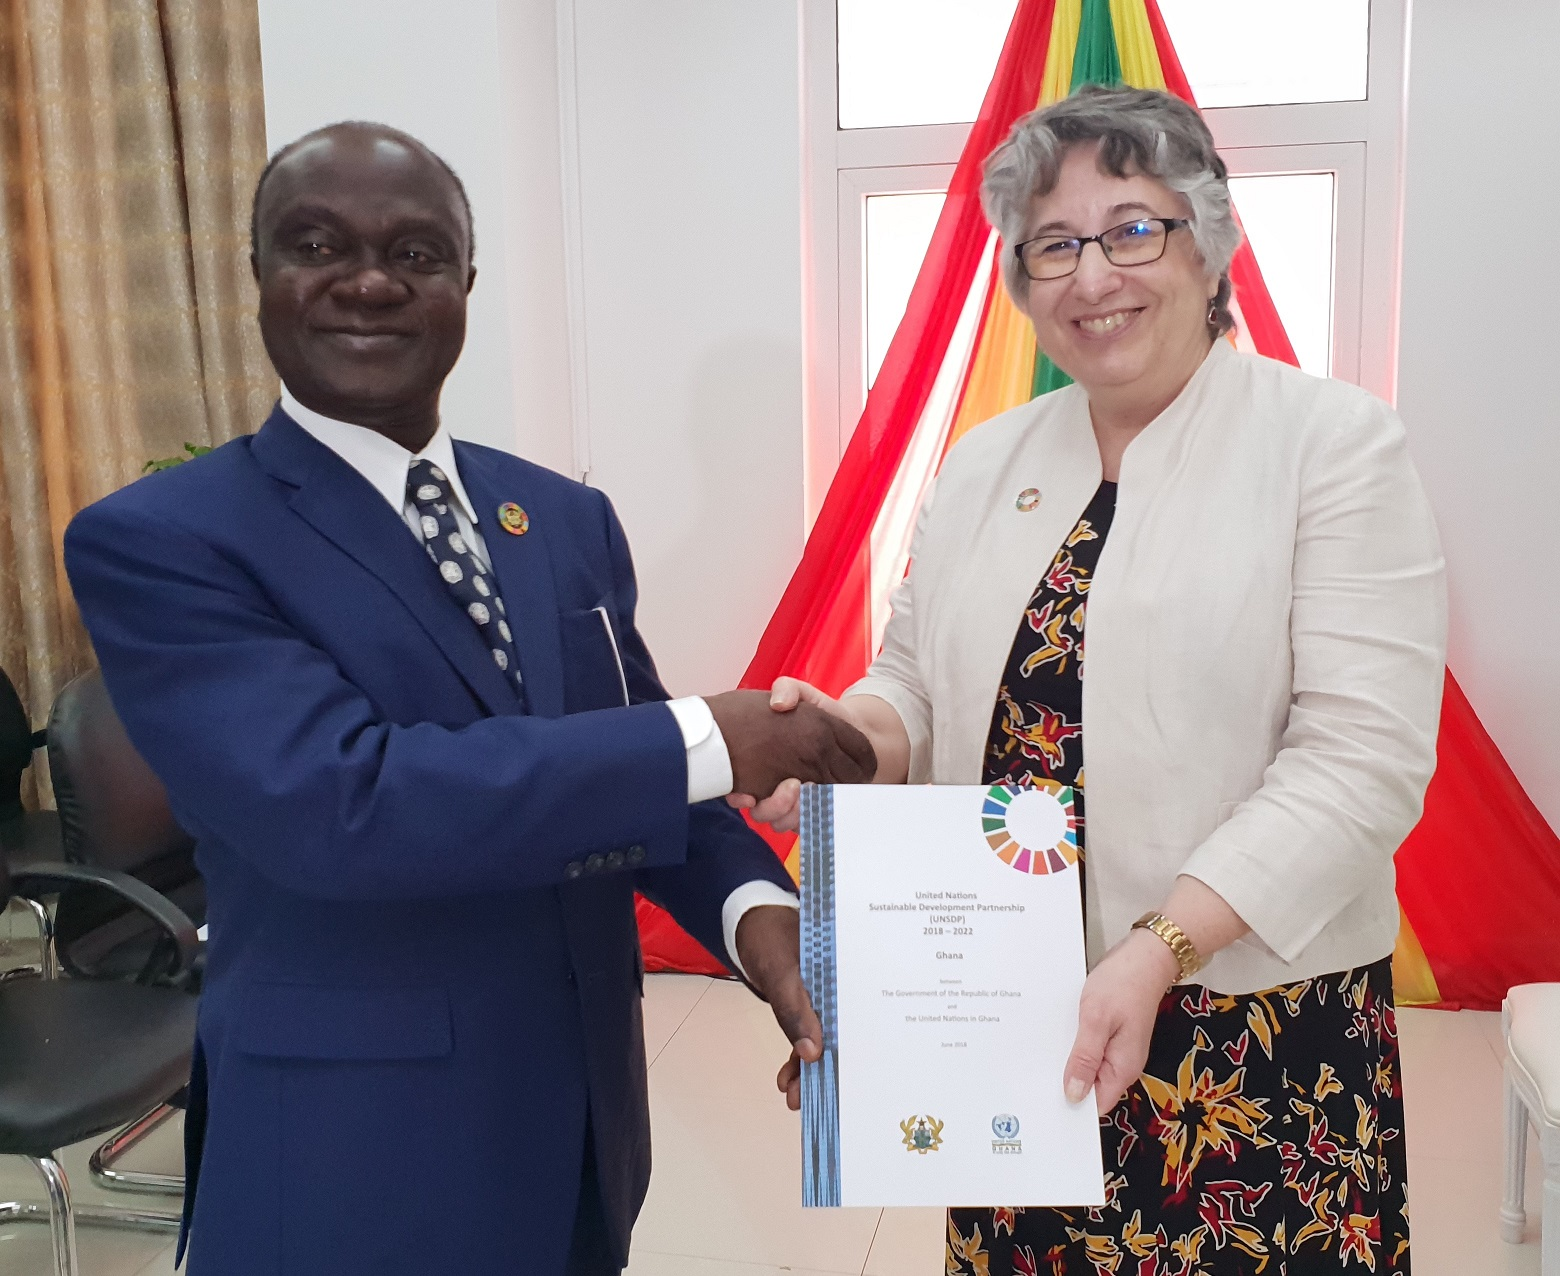 UN in Ghana and the Government launch the UN Sustainable Development Partnership